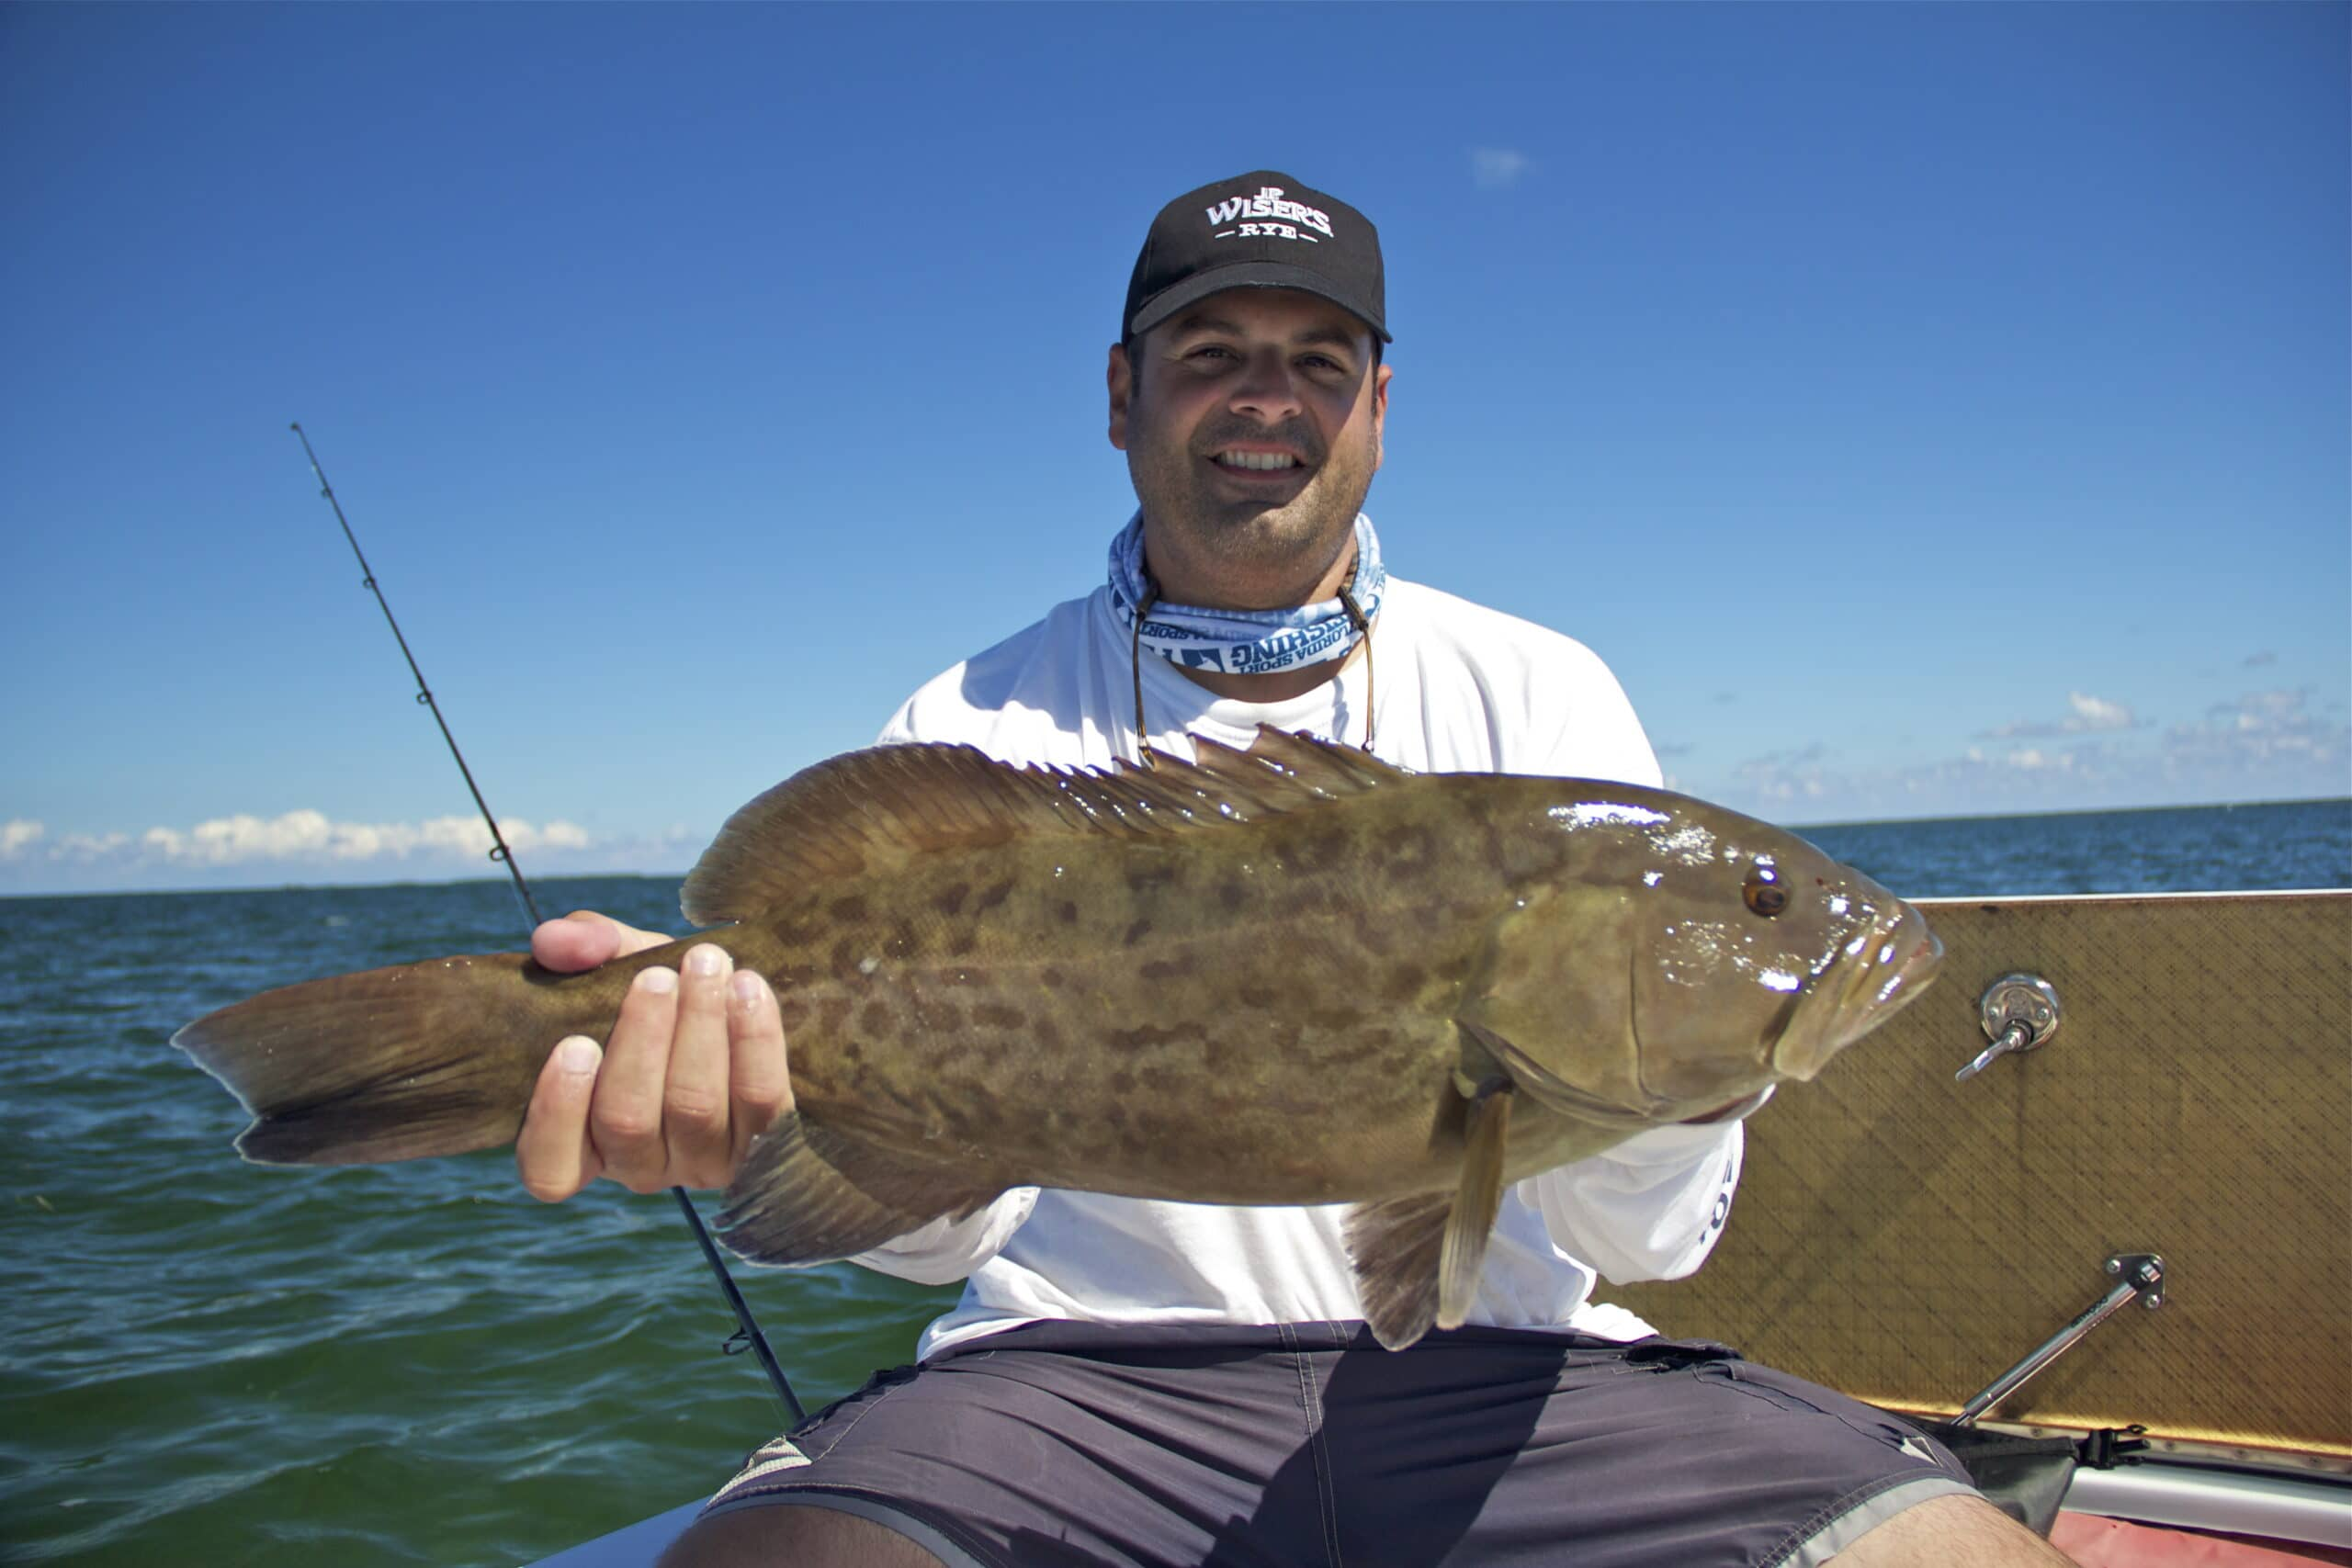 Miami Inshore Fishing Report|Catching Big Grouper In Shallow Water